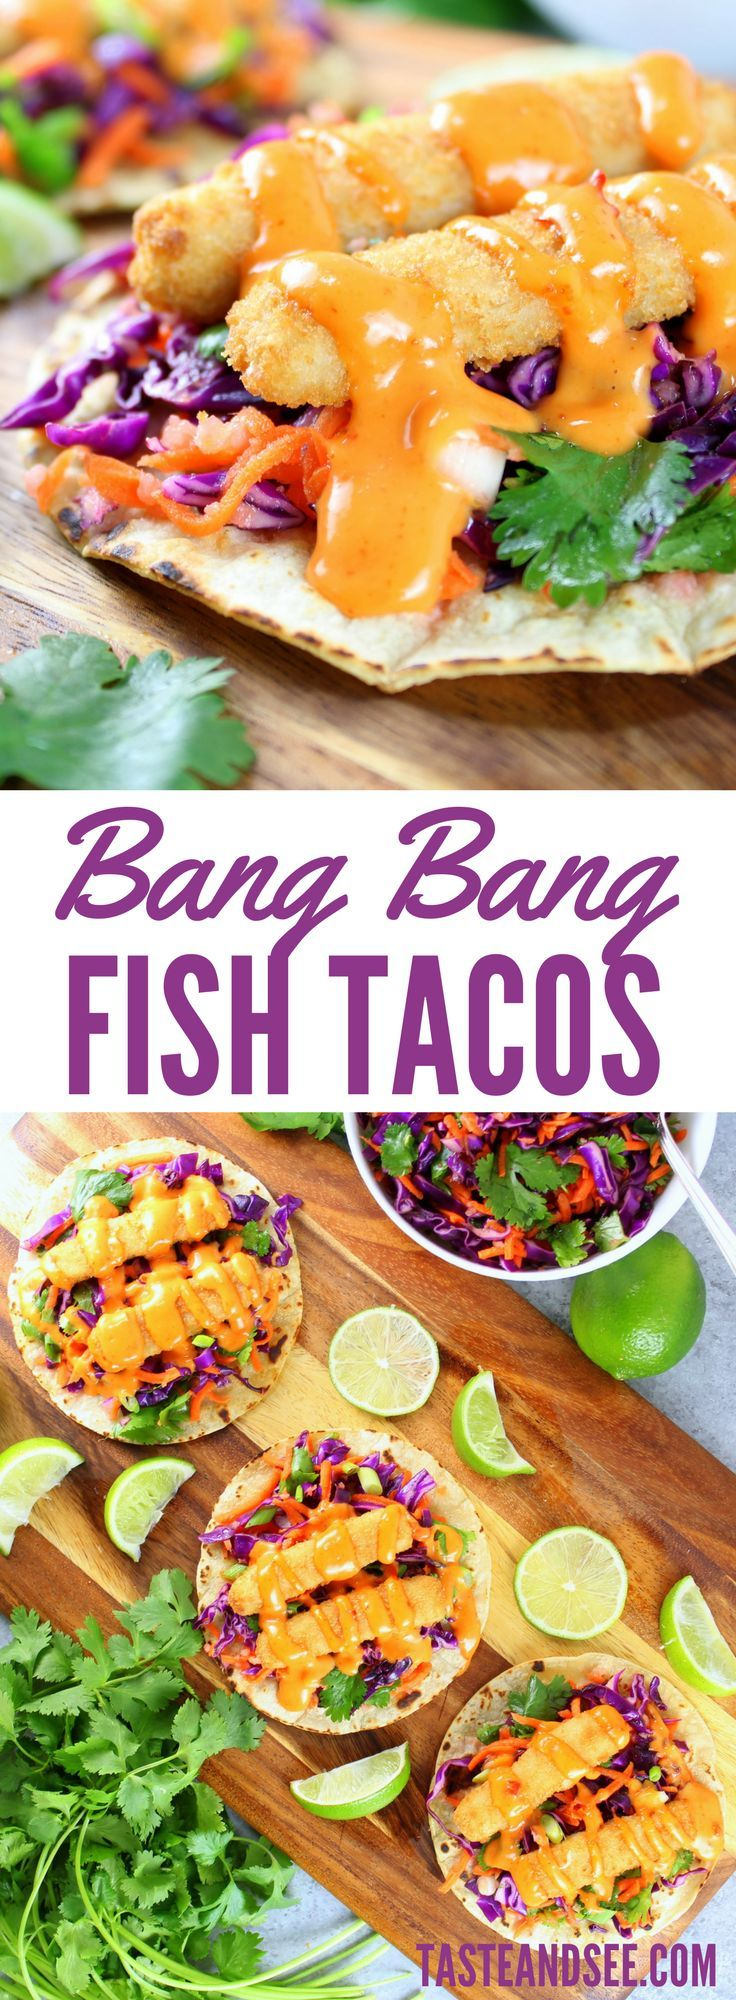 Bang Bang Fish Tacos – a delicious well-balanced meal! With lightly toasted corn tortillas, citrusy cabbage slaw, fish sticks, & yummy Bang Bang sauce! | Mexican Food | #Taco | Seafood | 30-Minute Meal | http://tasteandsee.com